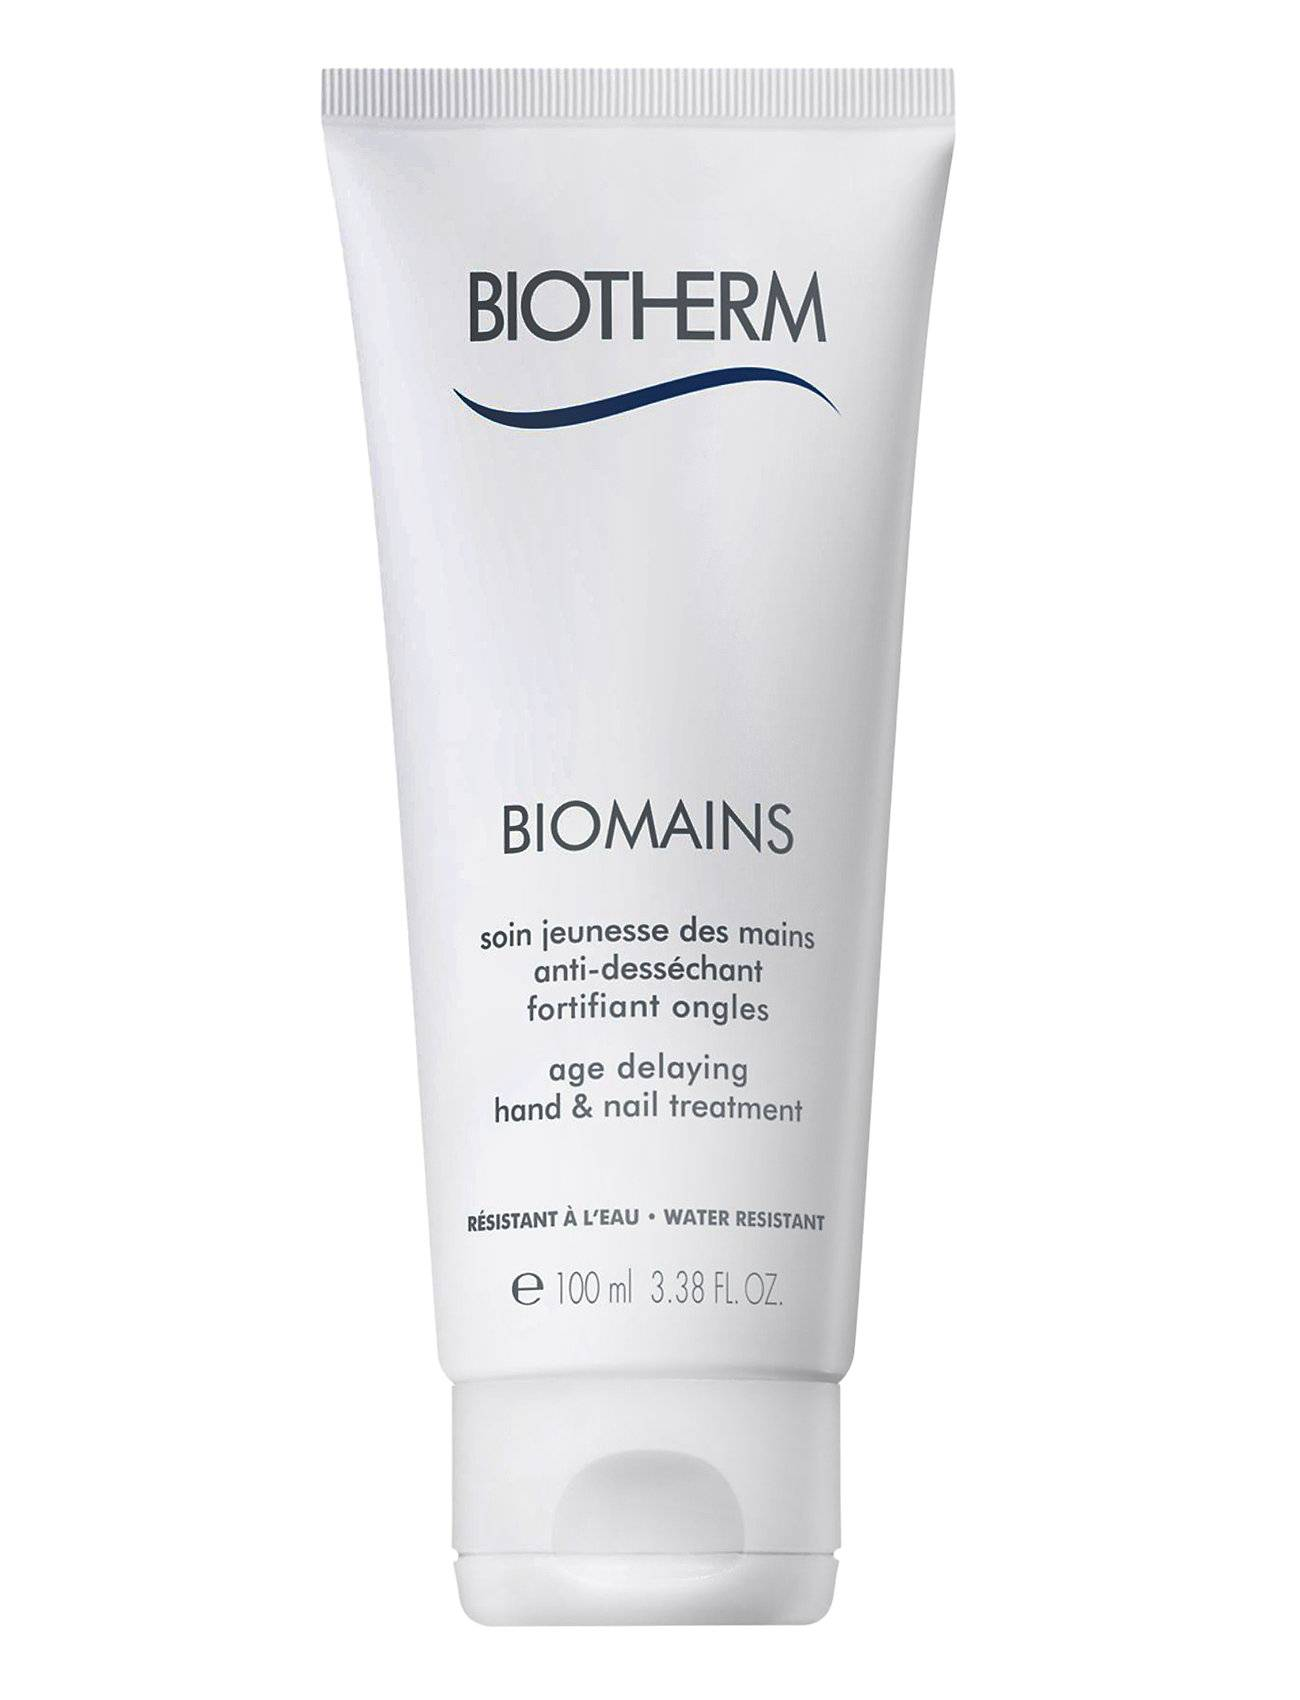 Biotherm Biomains - Hand Lotion 100 Ml